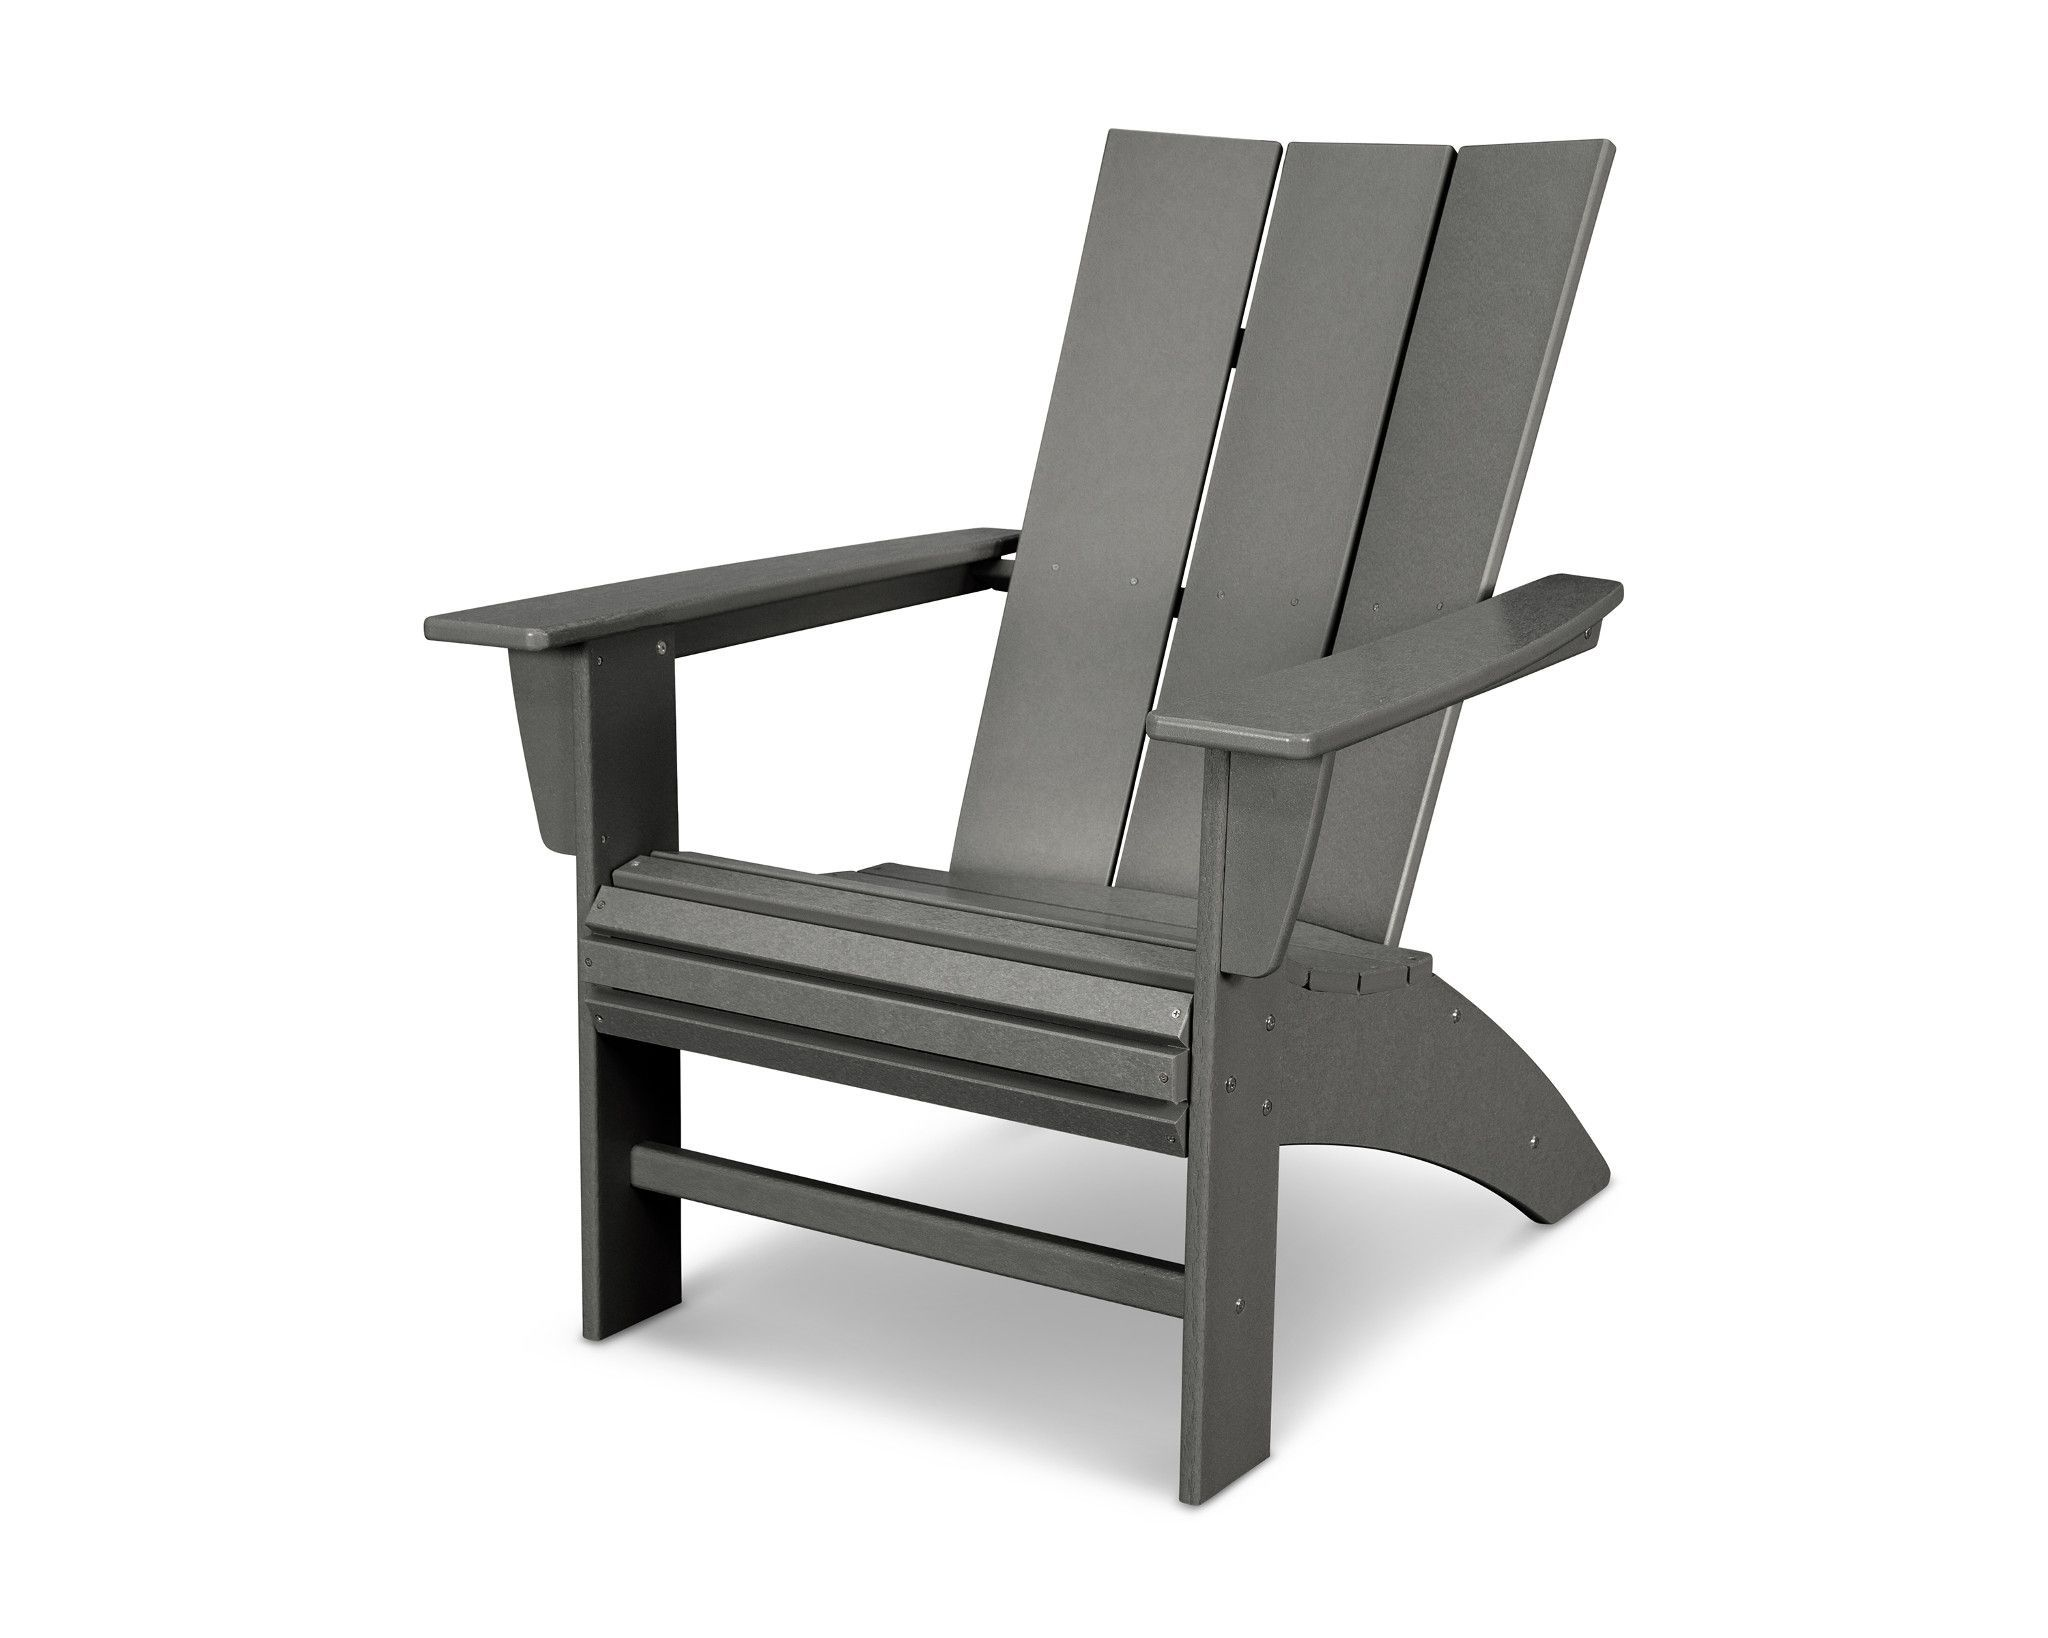 Take a moment to relax in the modern curveback adirondack chair a spacious chair featuring curved back slats and waterfall front for added comfort